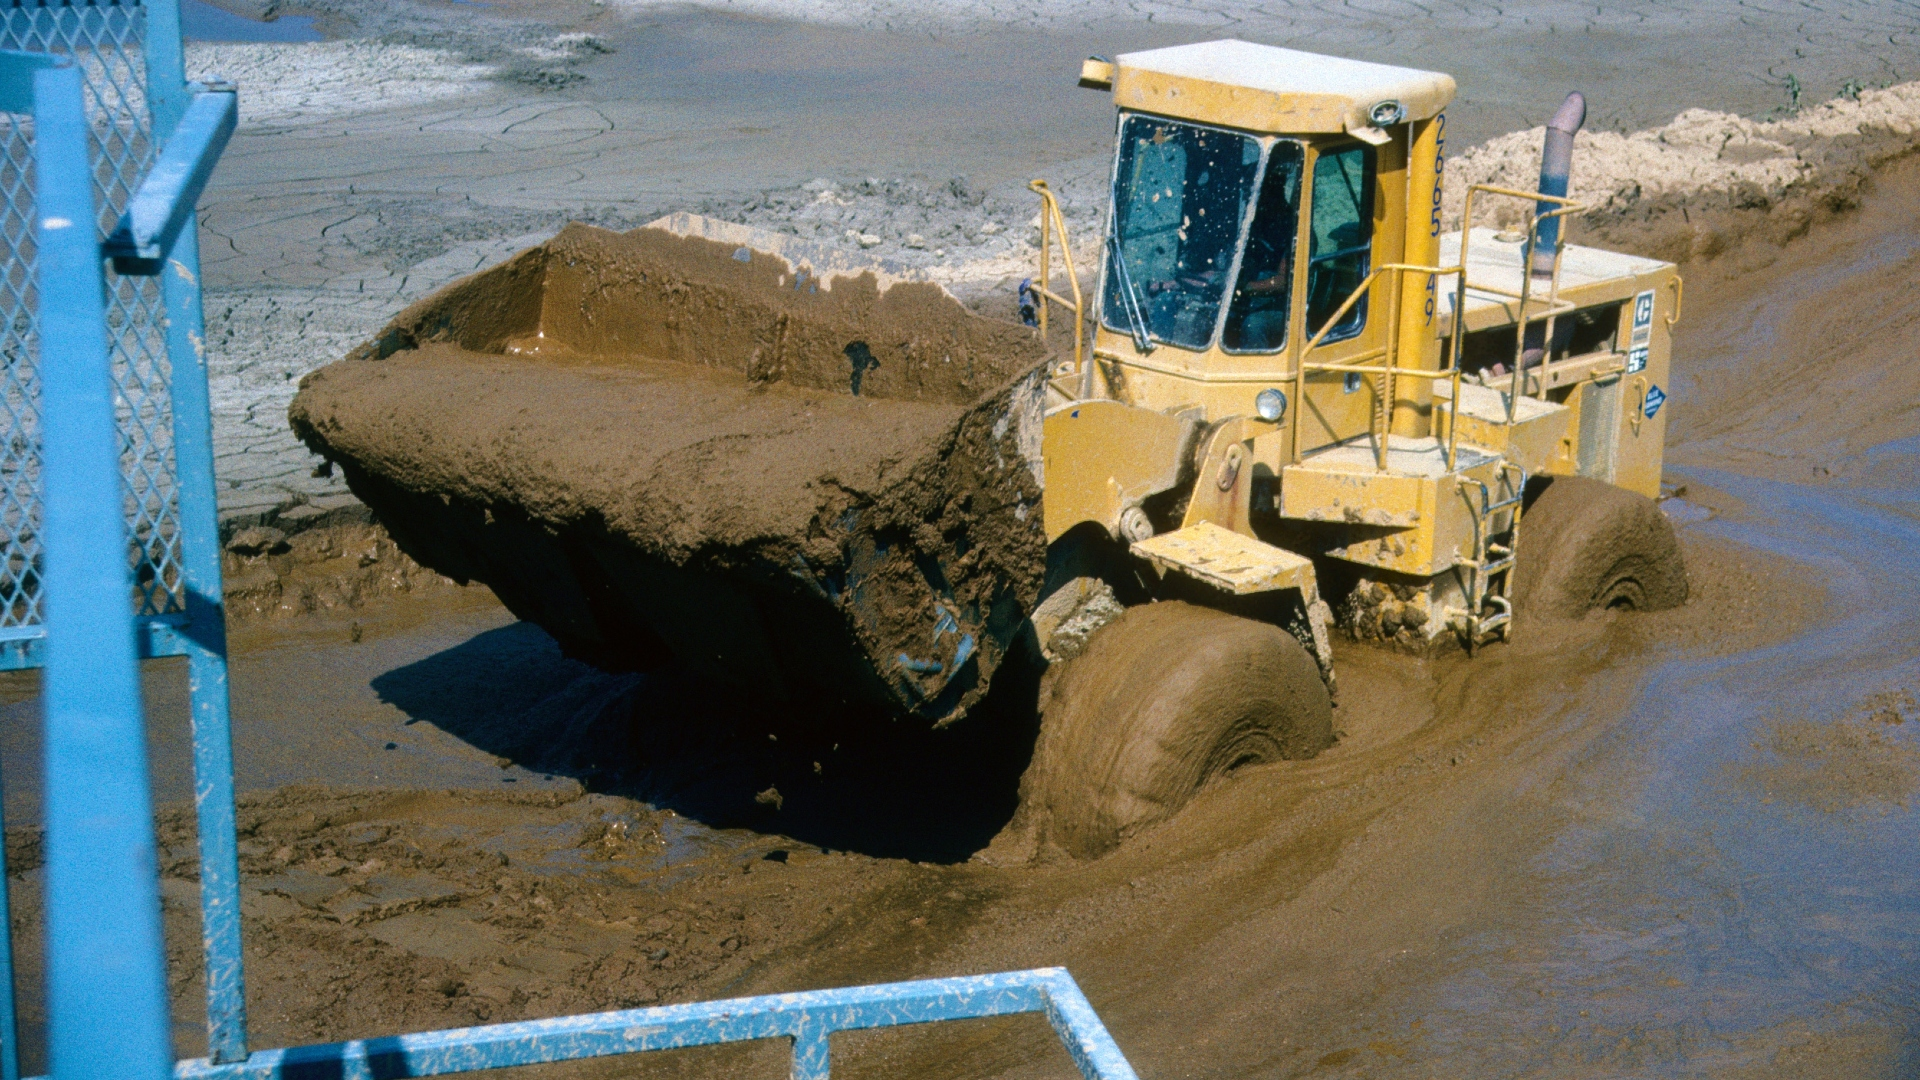 A front loader driving through a muddy settling pond with a watery bucket load.